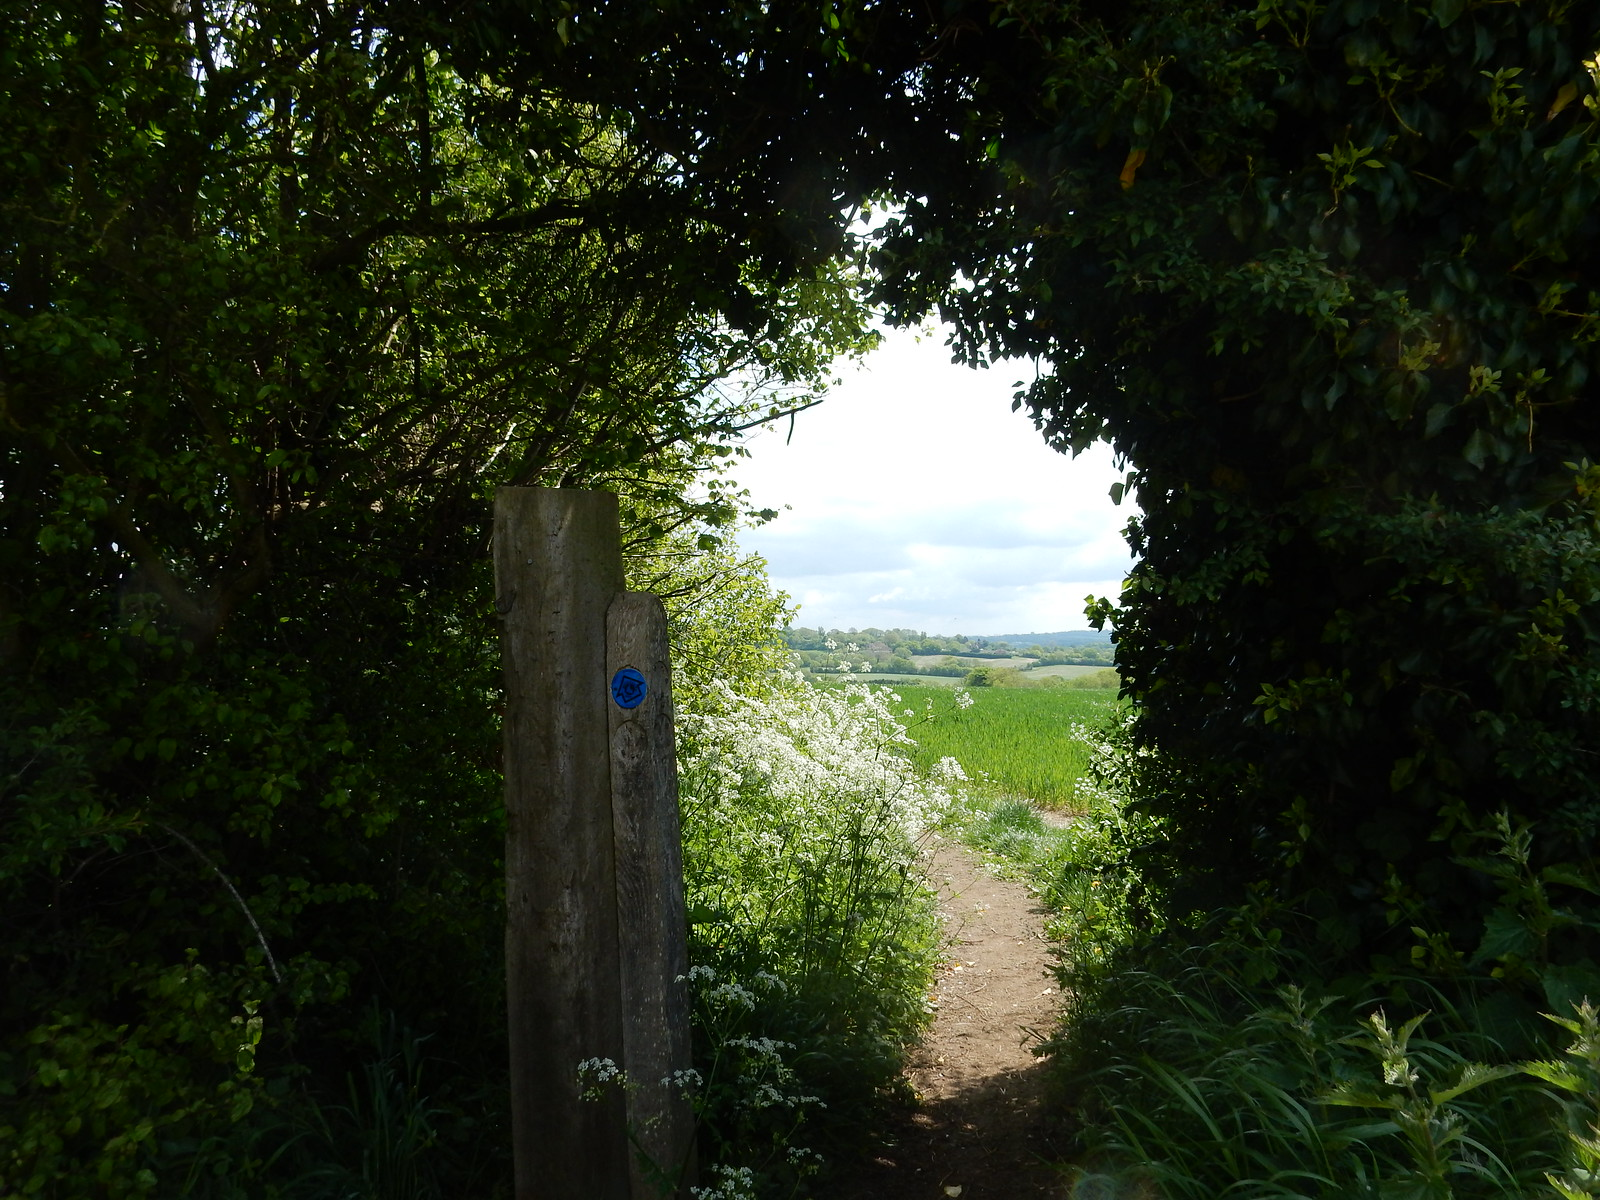 Through a gap Sutton Valence to Pluckley